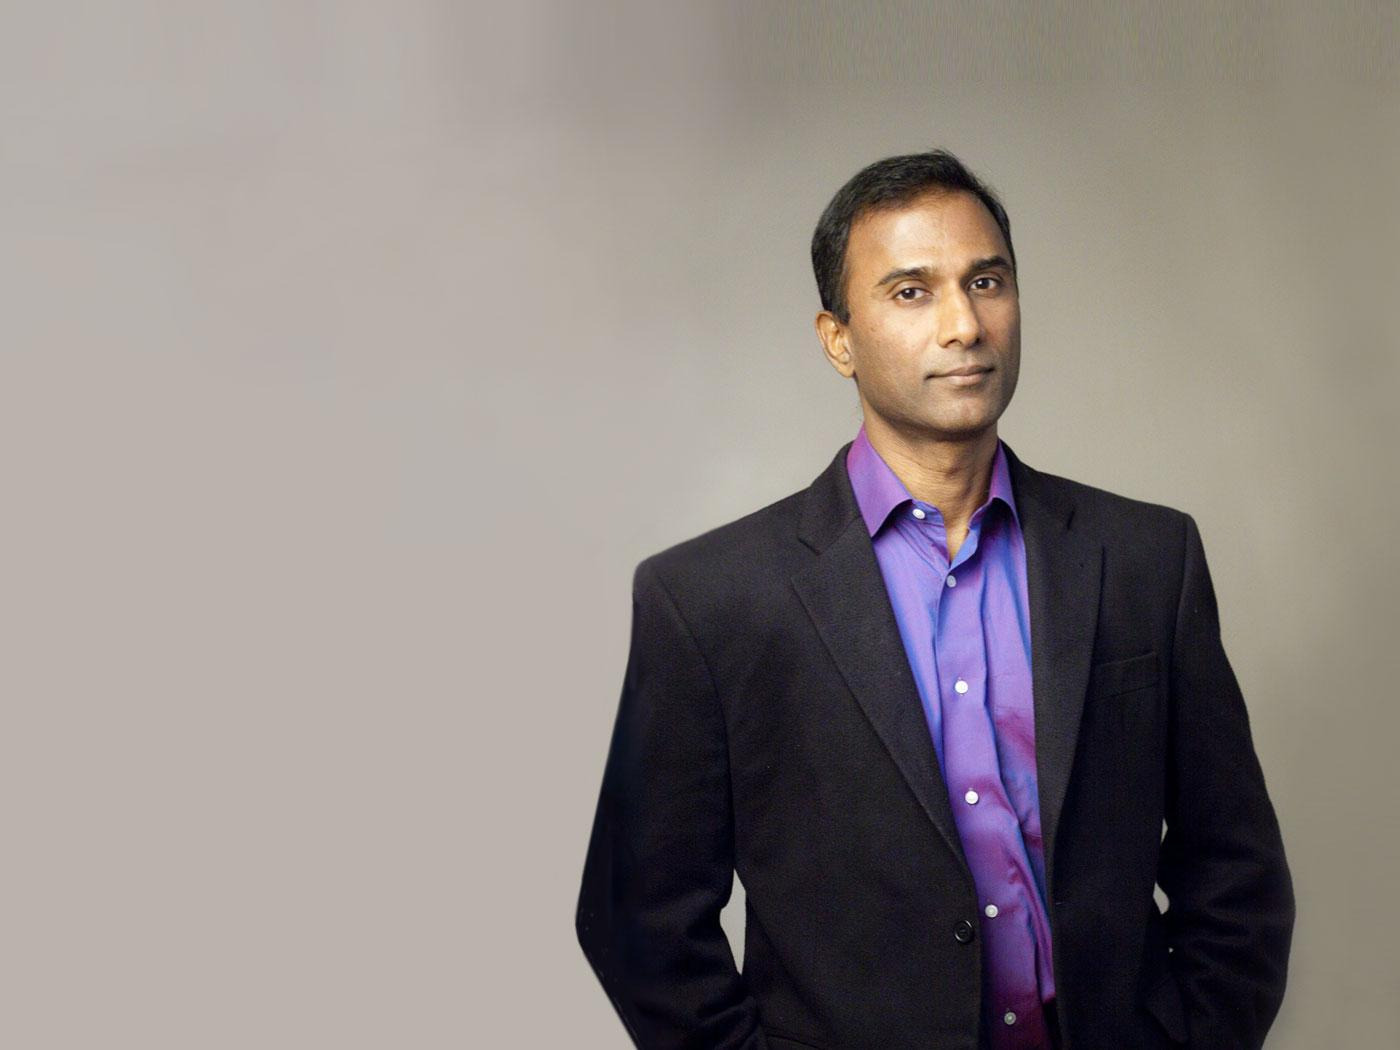 Dr. Ayyadurai's Wins Key Victory in Election Fraud Case 1